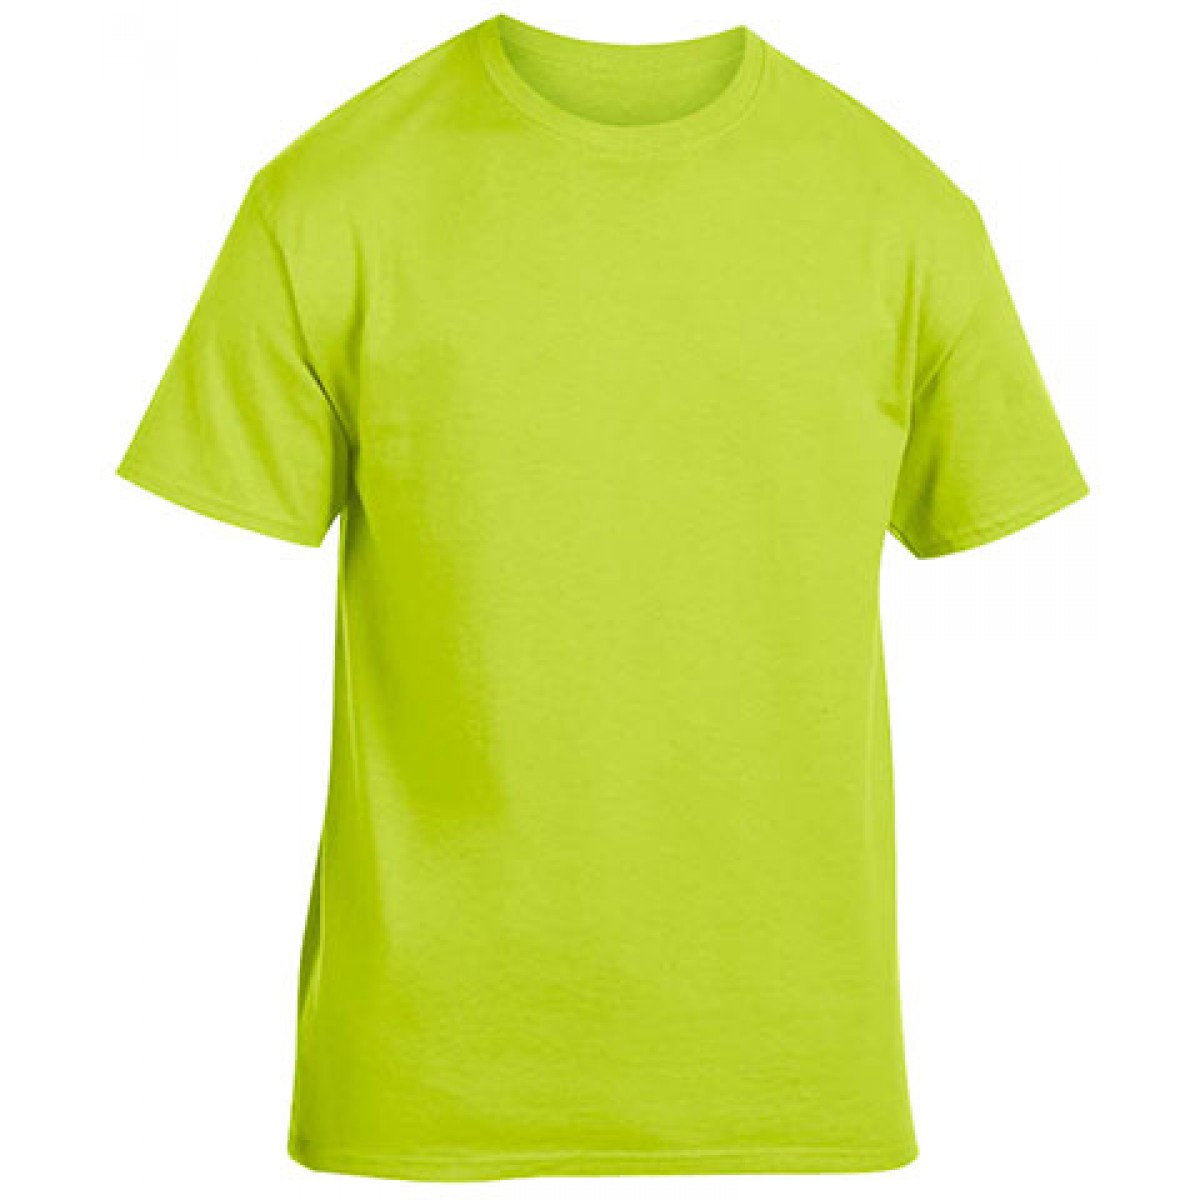 Heavy Cotton Activewear T-Shirt-Safety Green-S